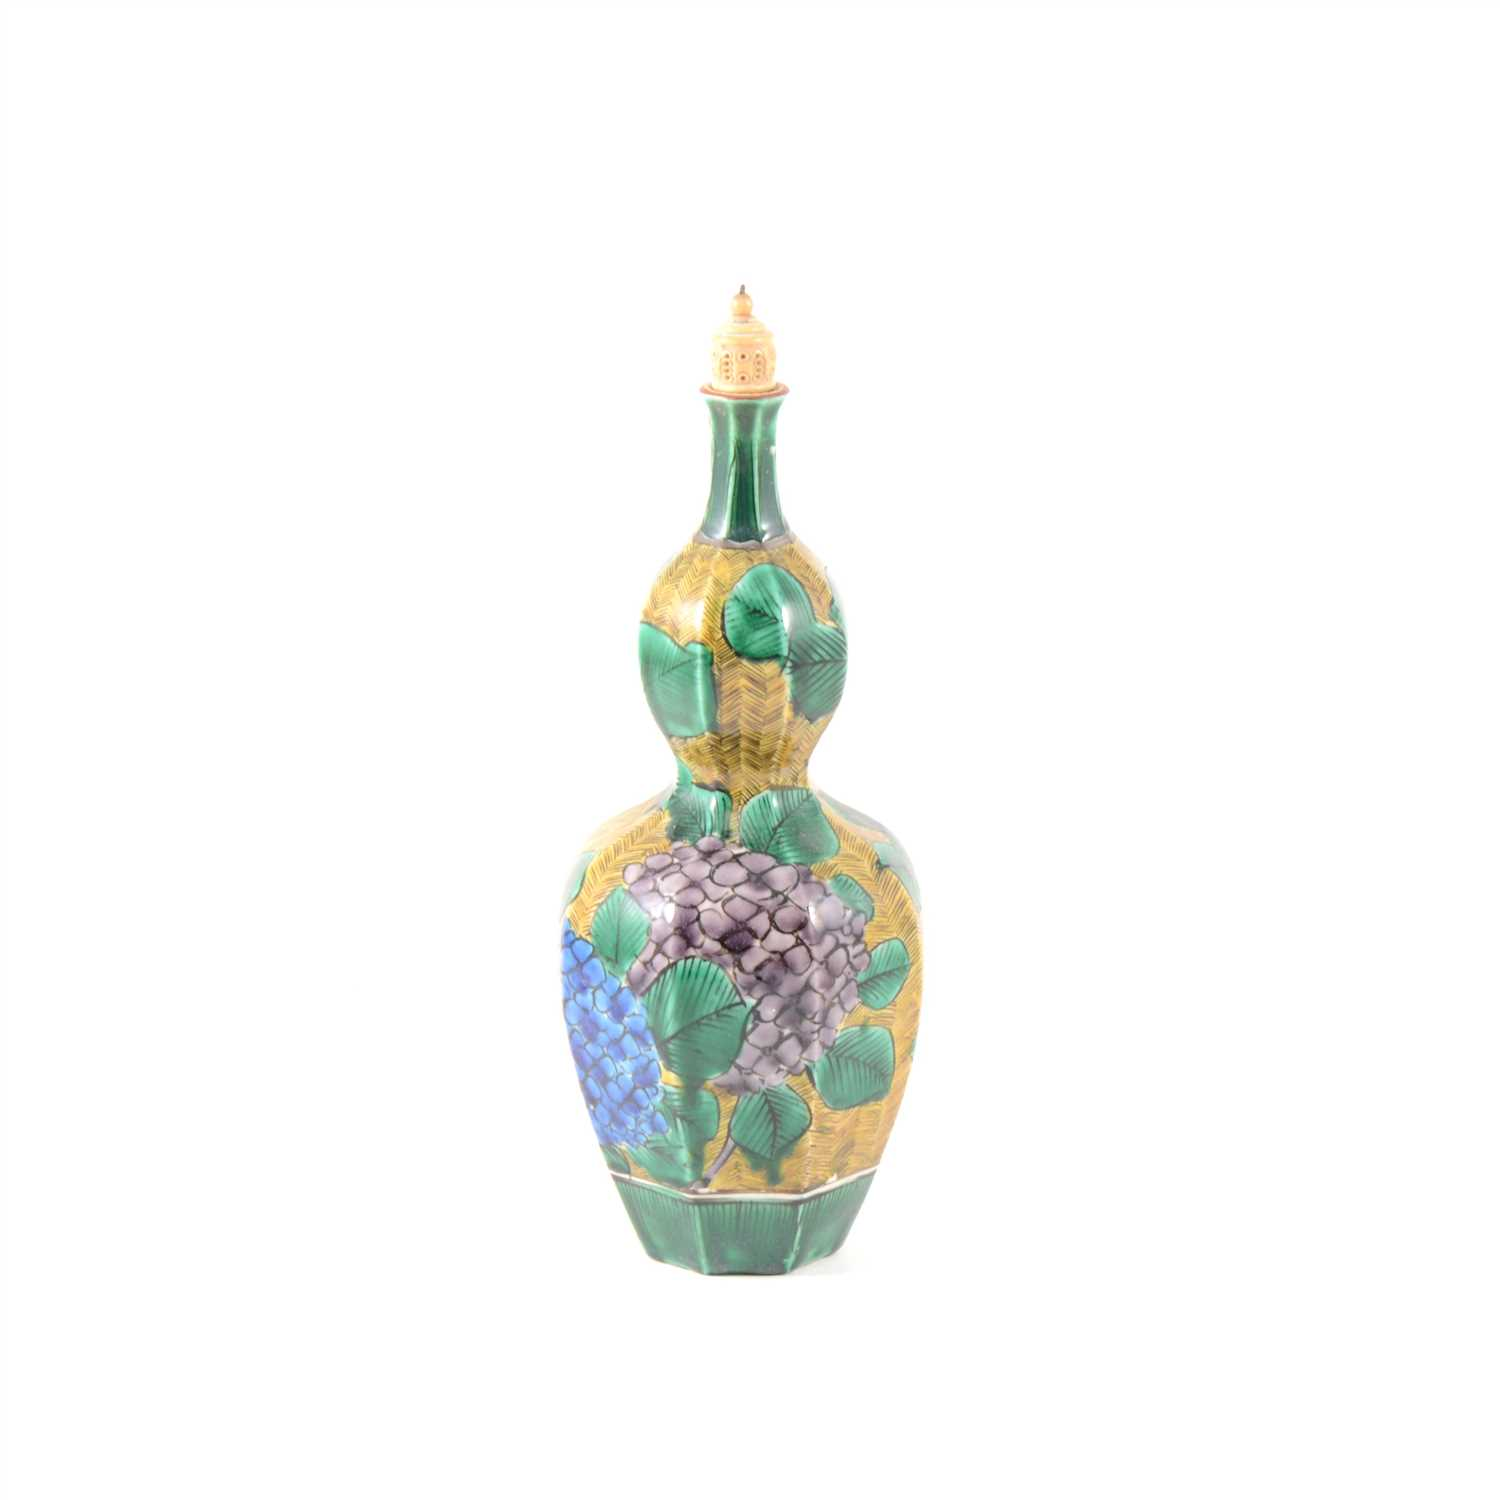 Lot 16-Sino-Indian double gourd shape bottle, 19th century